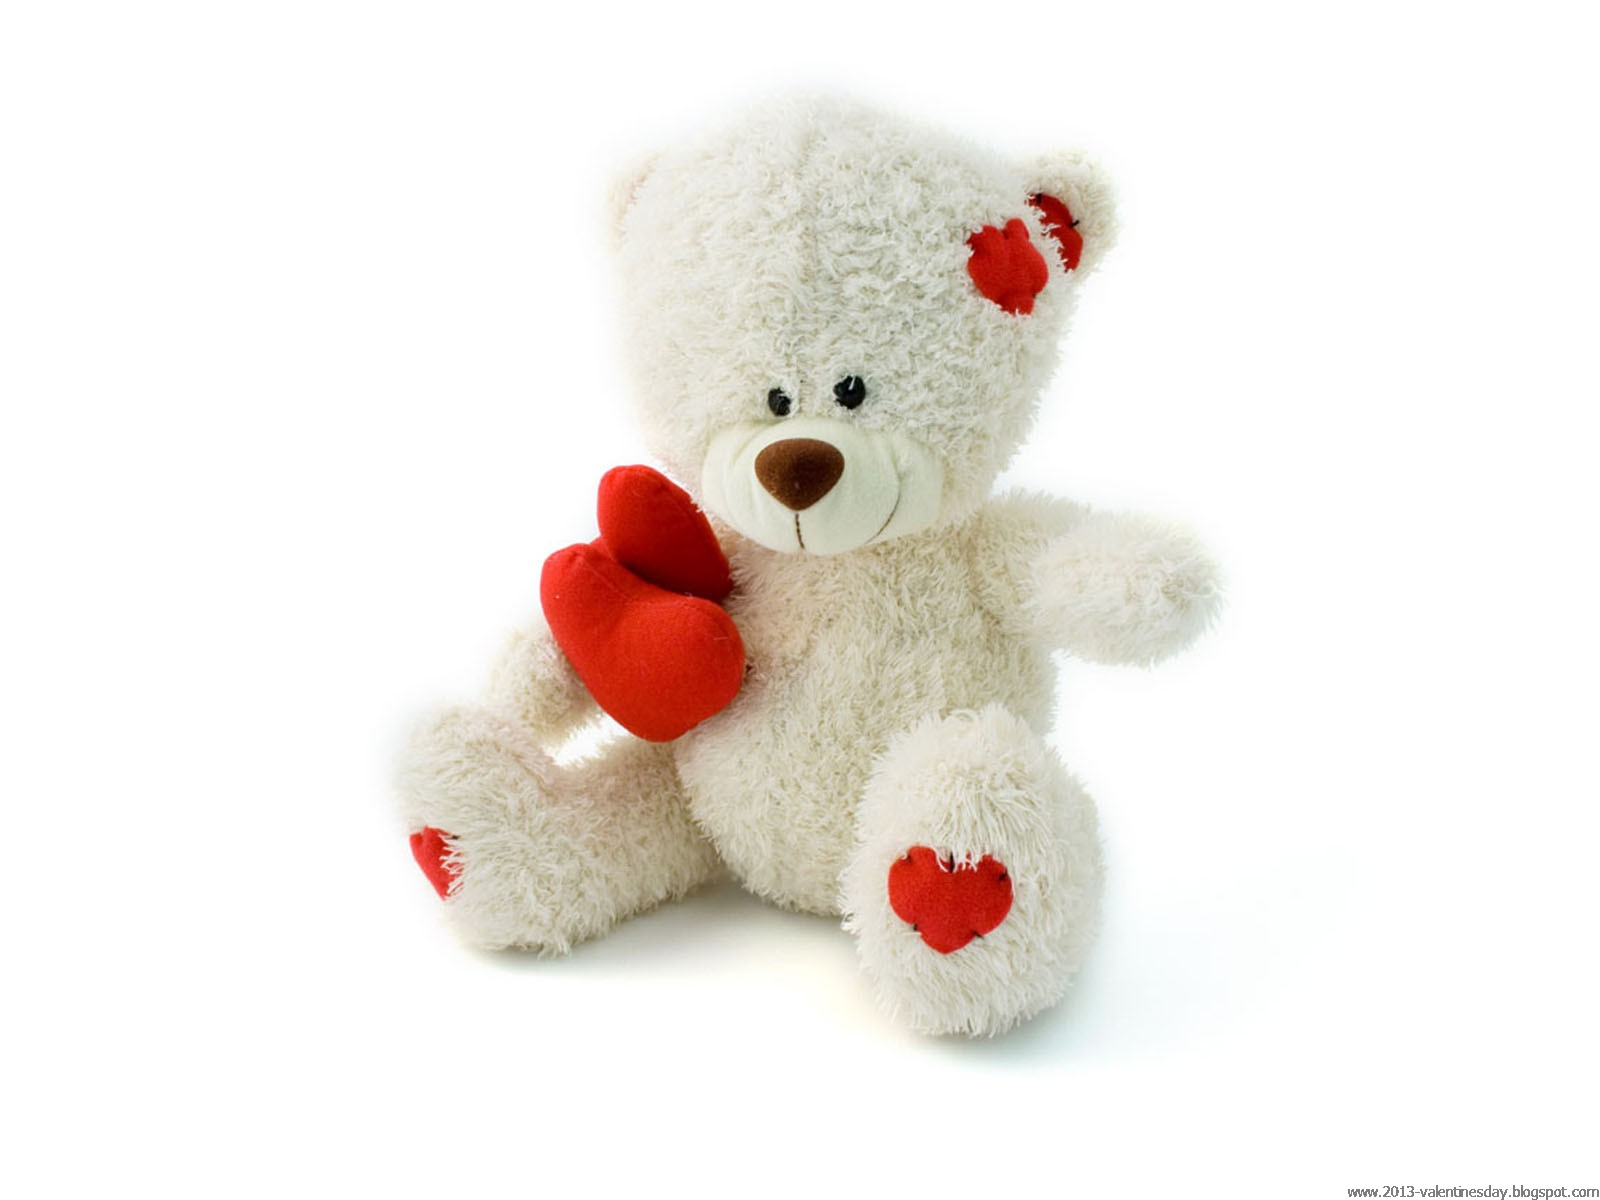 Teddy bear with love images - photo#20